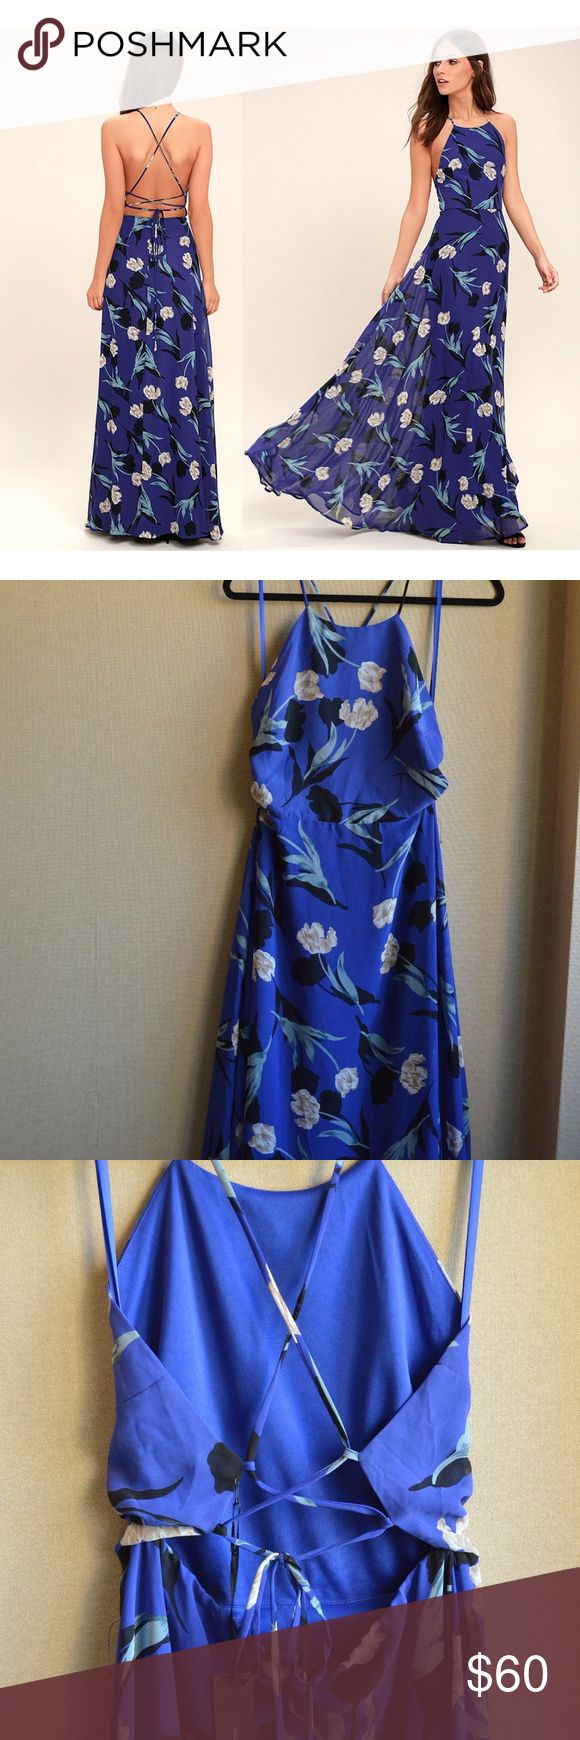 "NWT Lulus blue floral maxi dress Beautiful brand new Lulus ""All I Need"" maxi dress with criss-cross strap back. Blue and white floral pattern. Super flattering dress makes the perfect wedding guest dress— flowing full length skirt spins on the dance floor! Lulus Dresses Maxi"